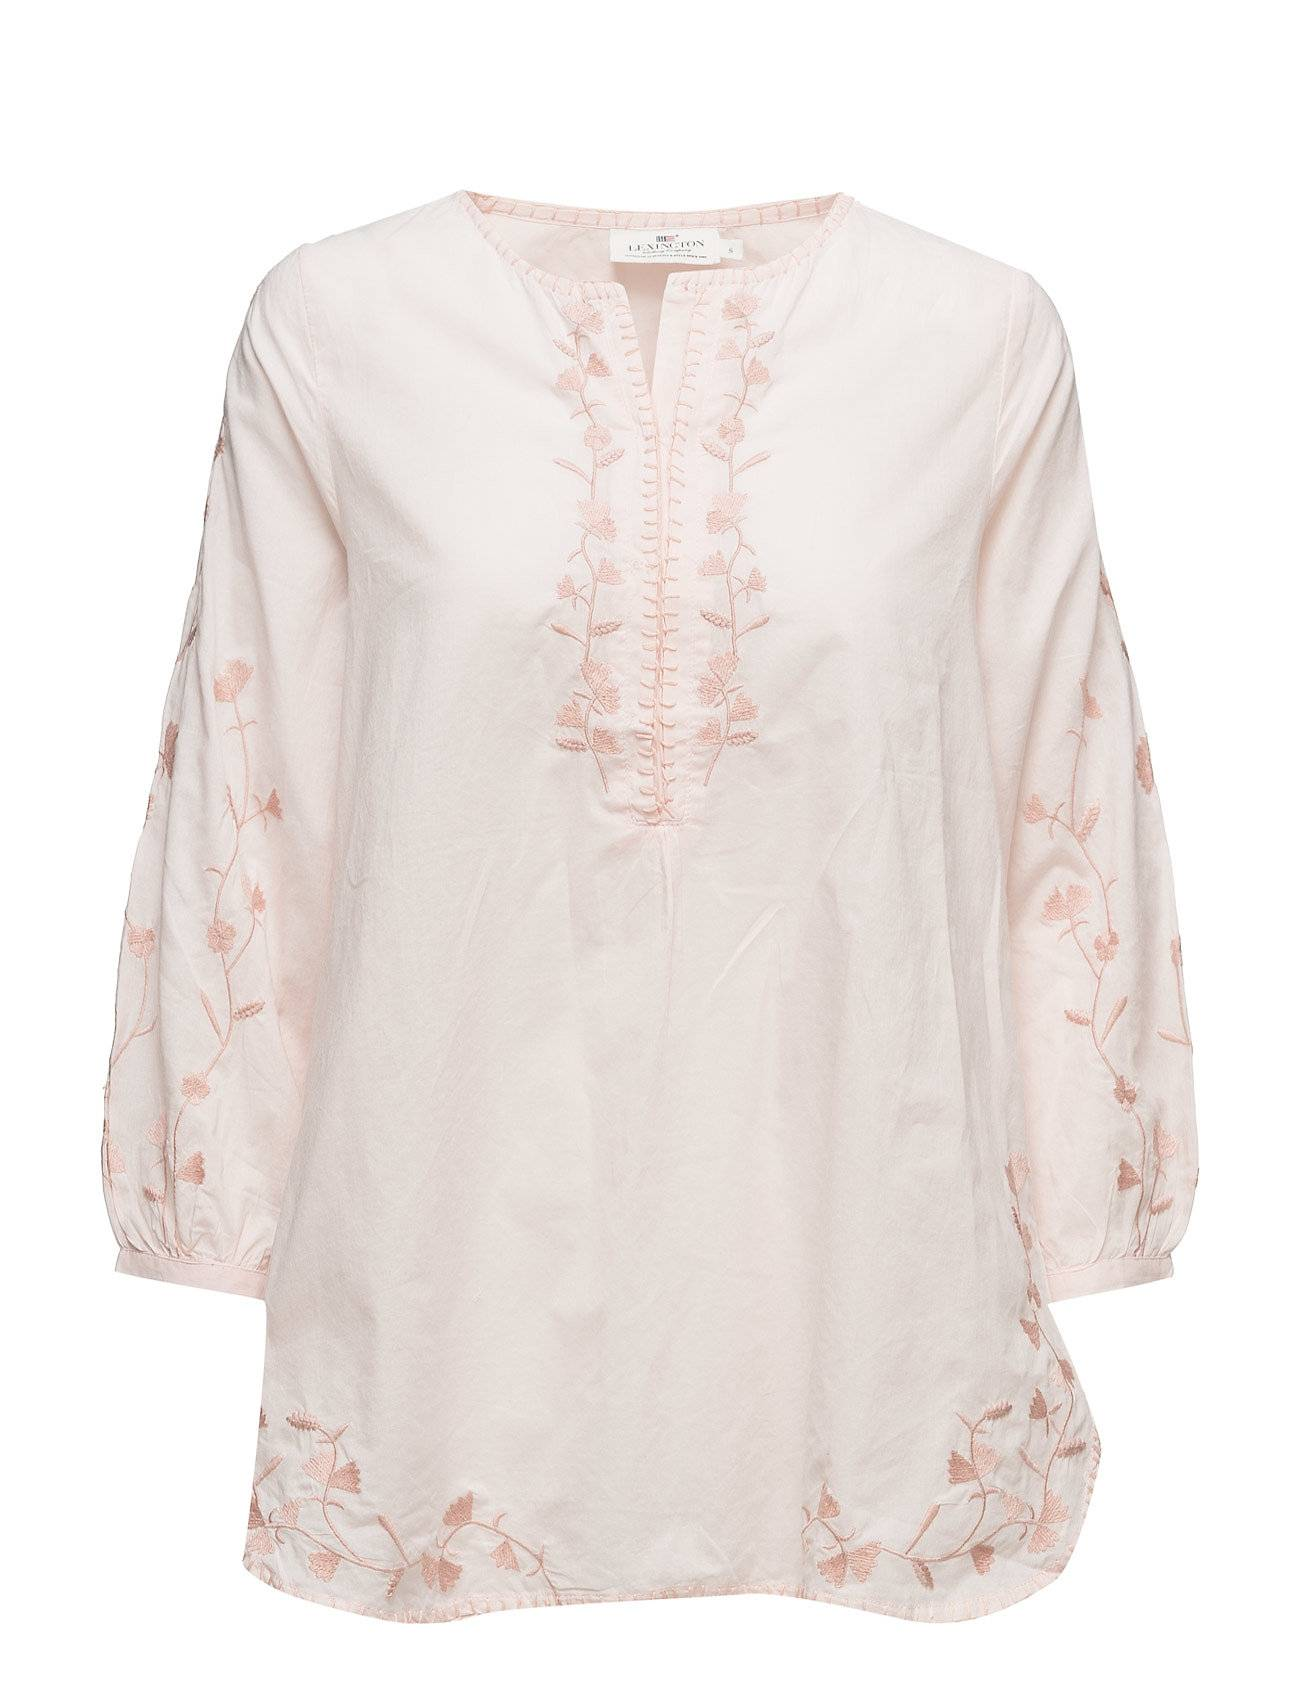 Lexington Clothing Daena Blouse